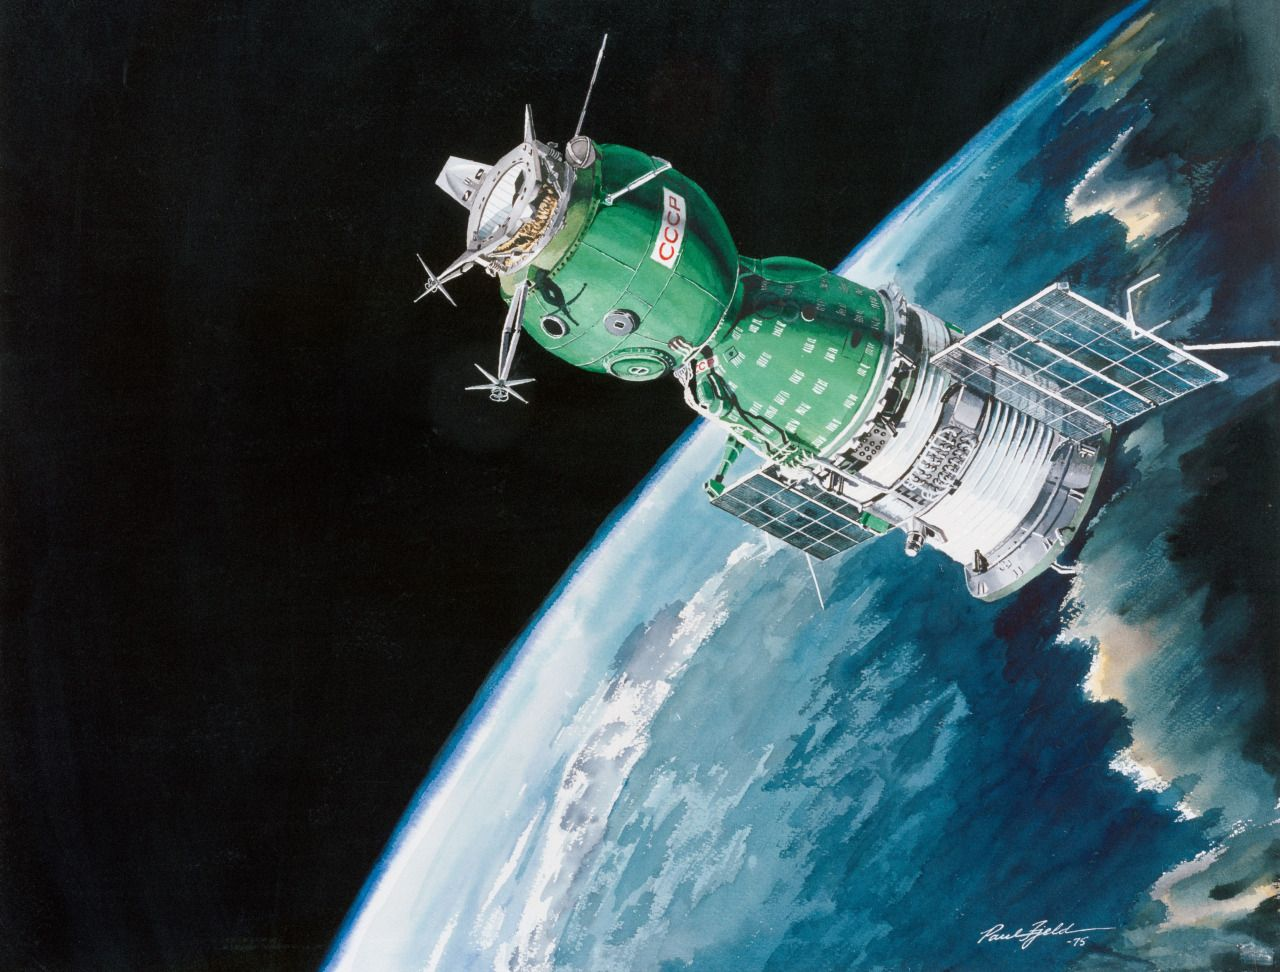 humanoidhistory: 1975 NASA concept art shows a Soviet spacecraft in Earth orbit during the Apollo